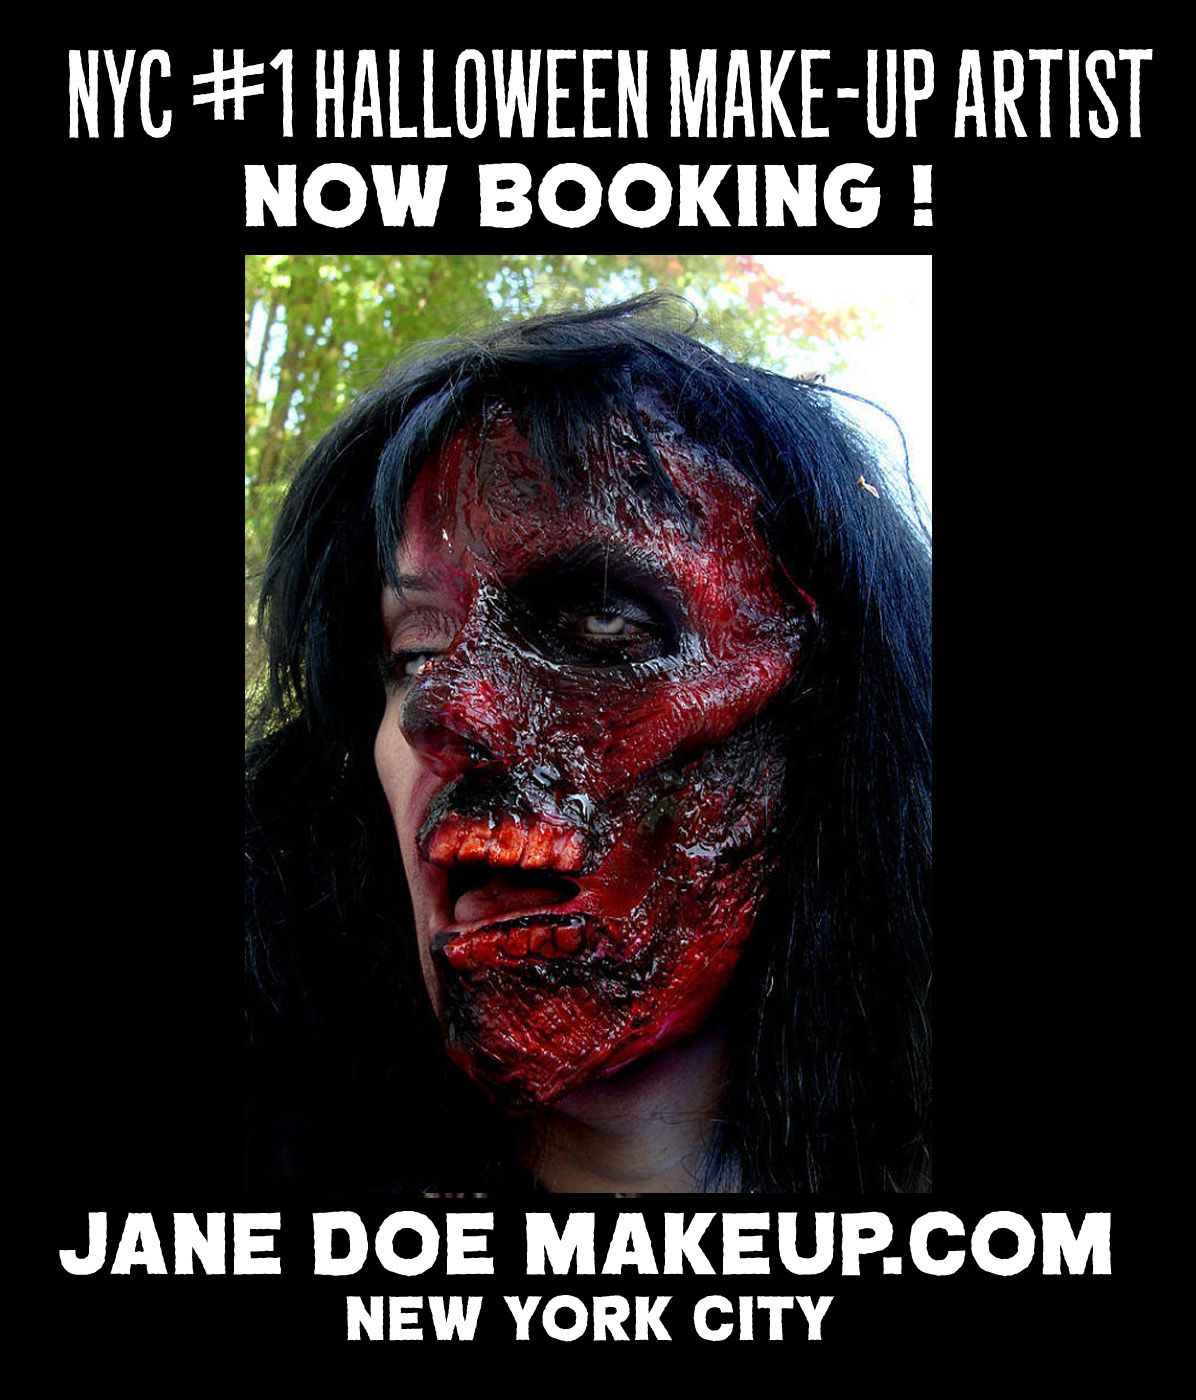 Halloween Makeup Artist NYC Jane Doe Makeup Now